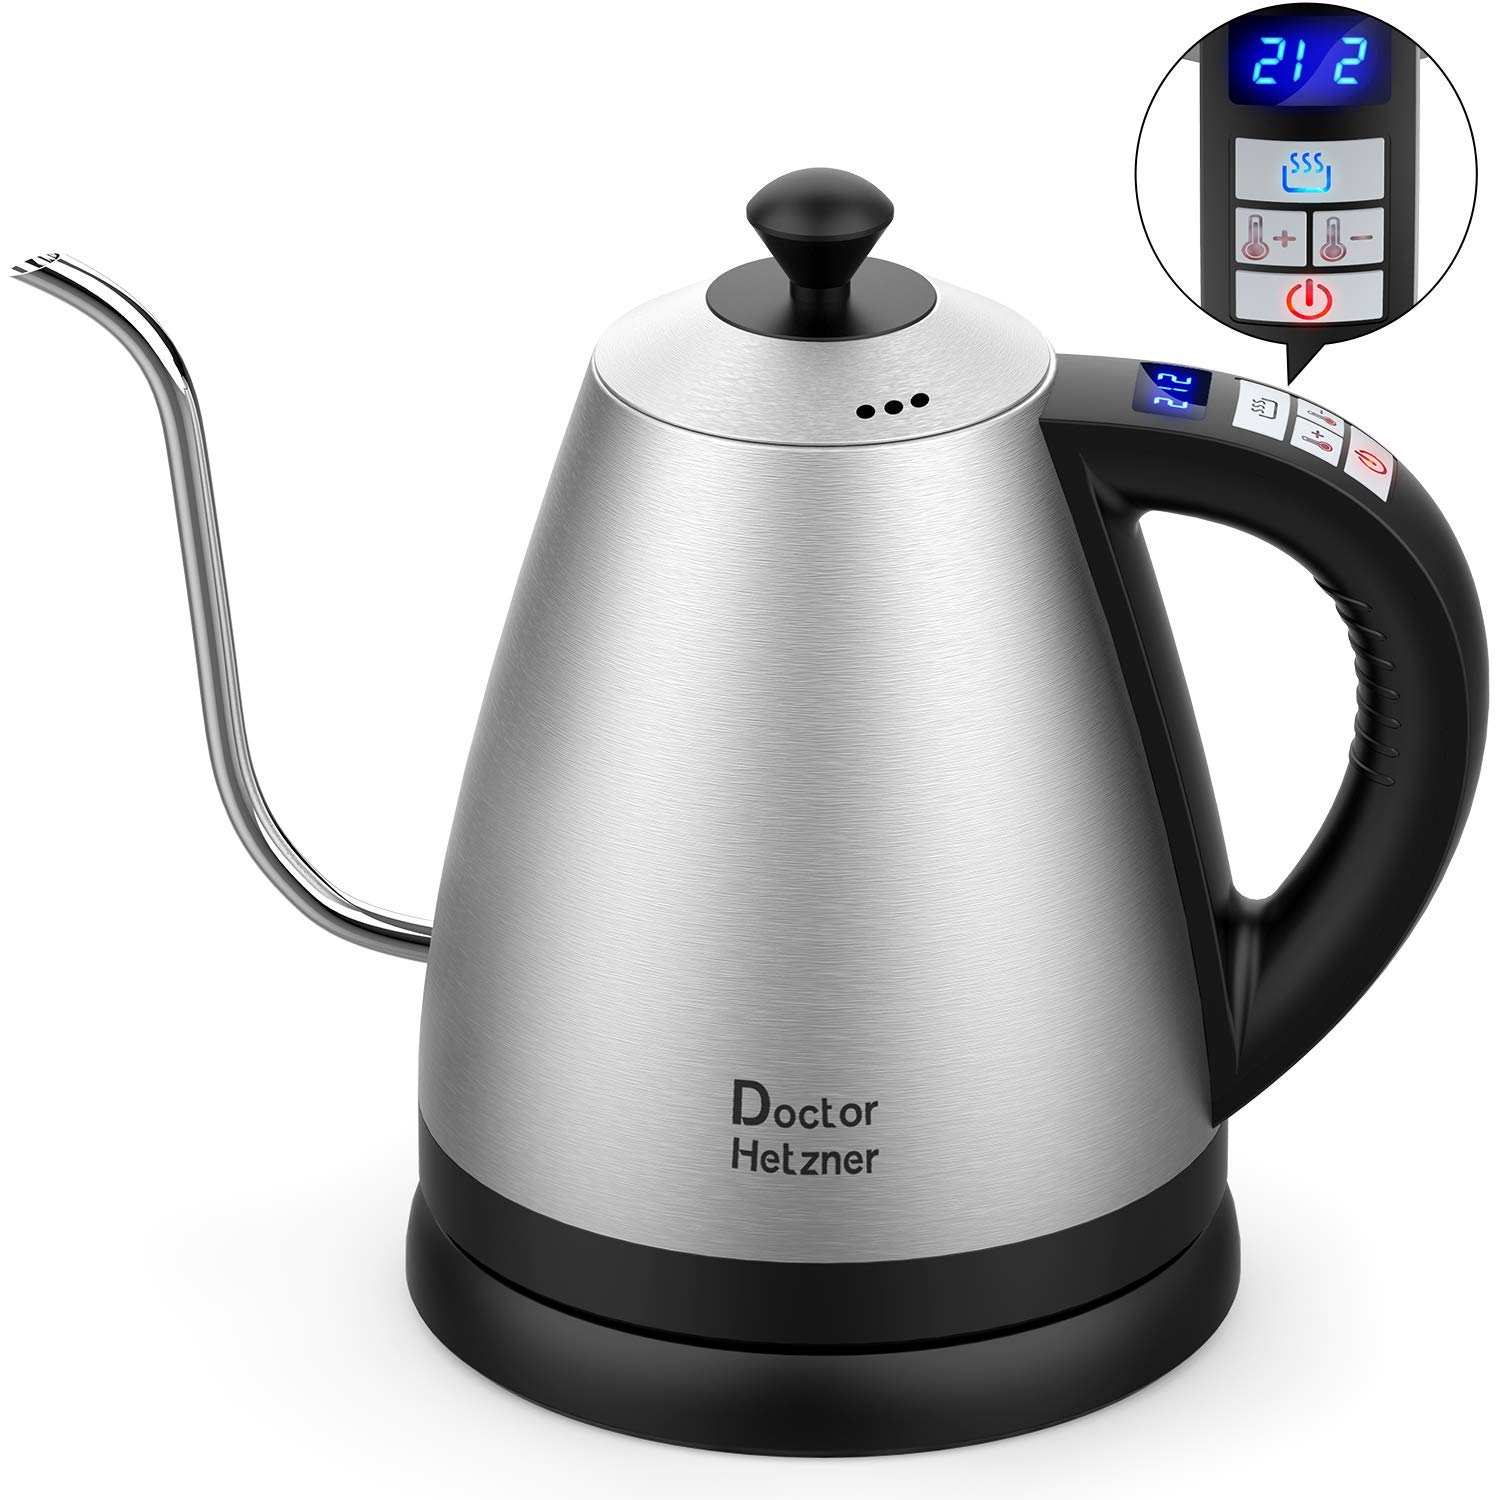 Electric Kettle by Doctor Hetzner